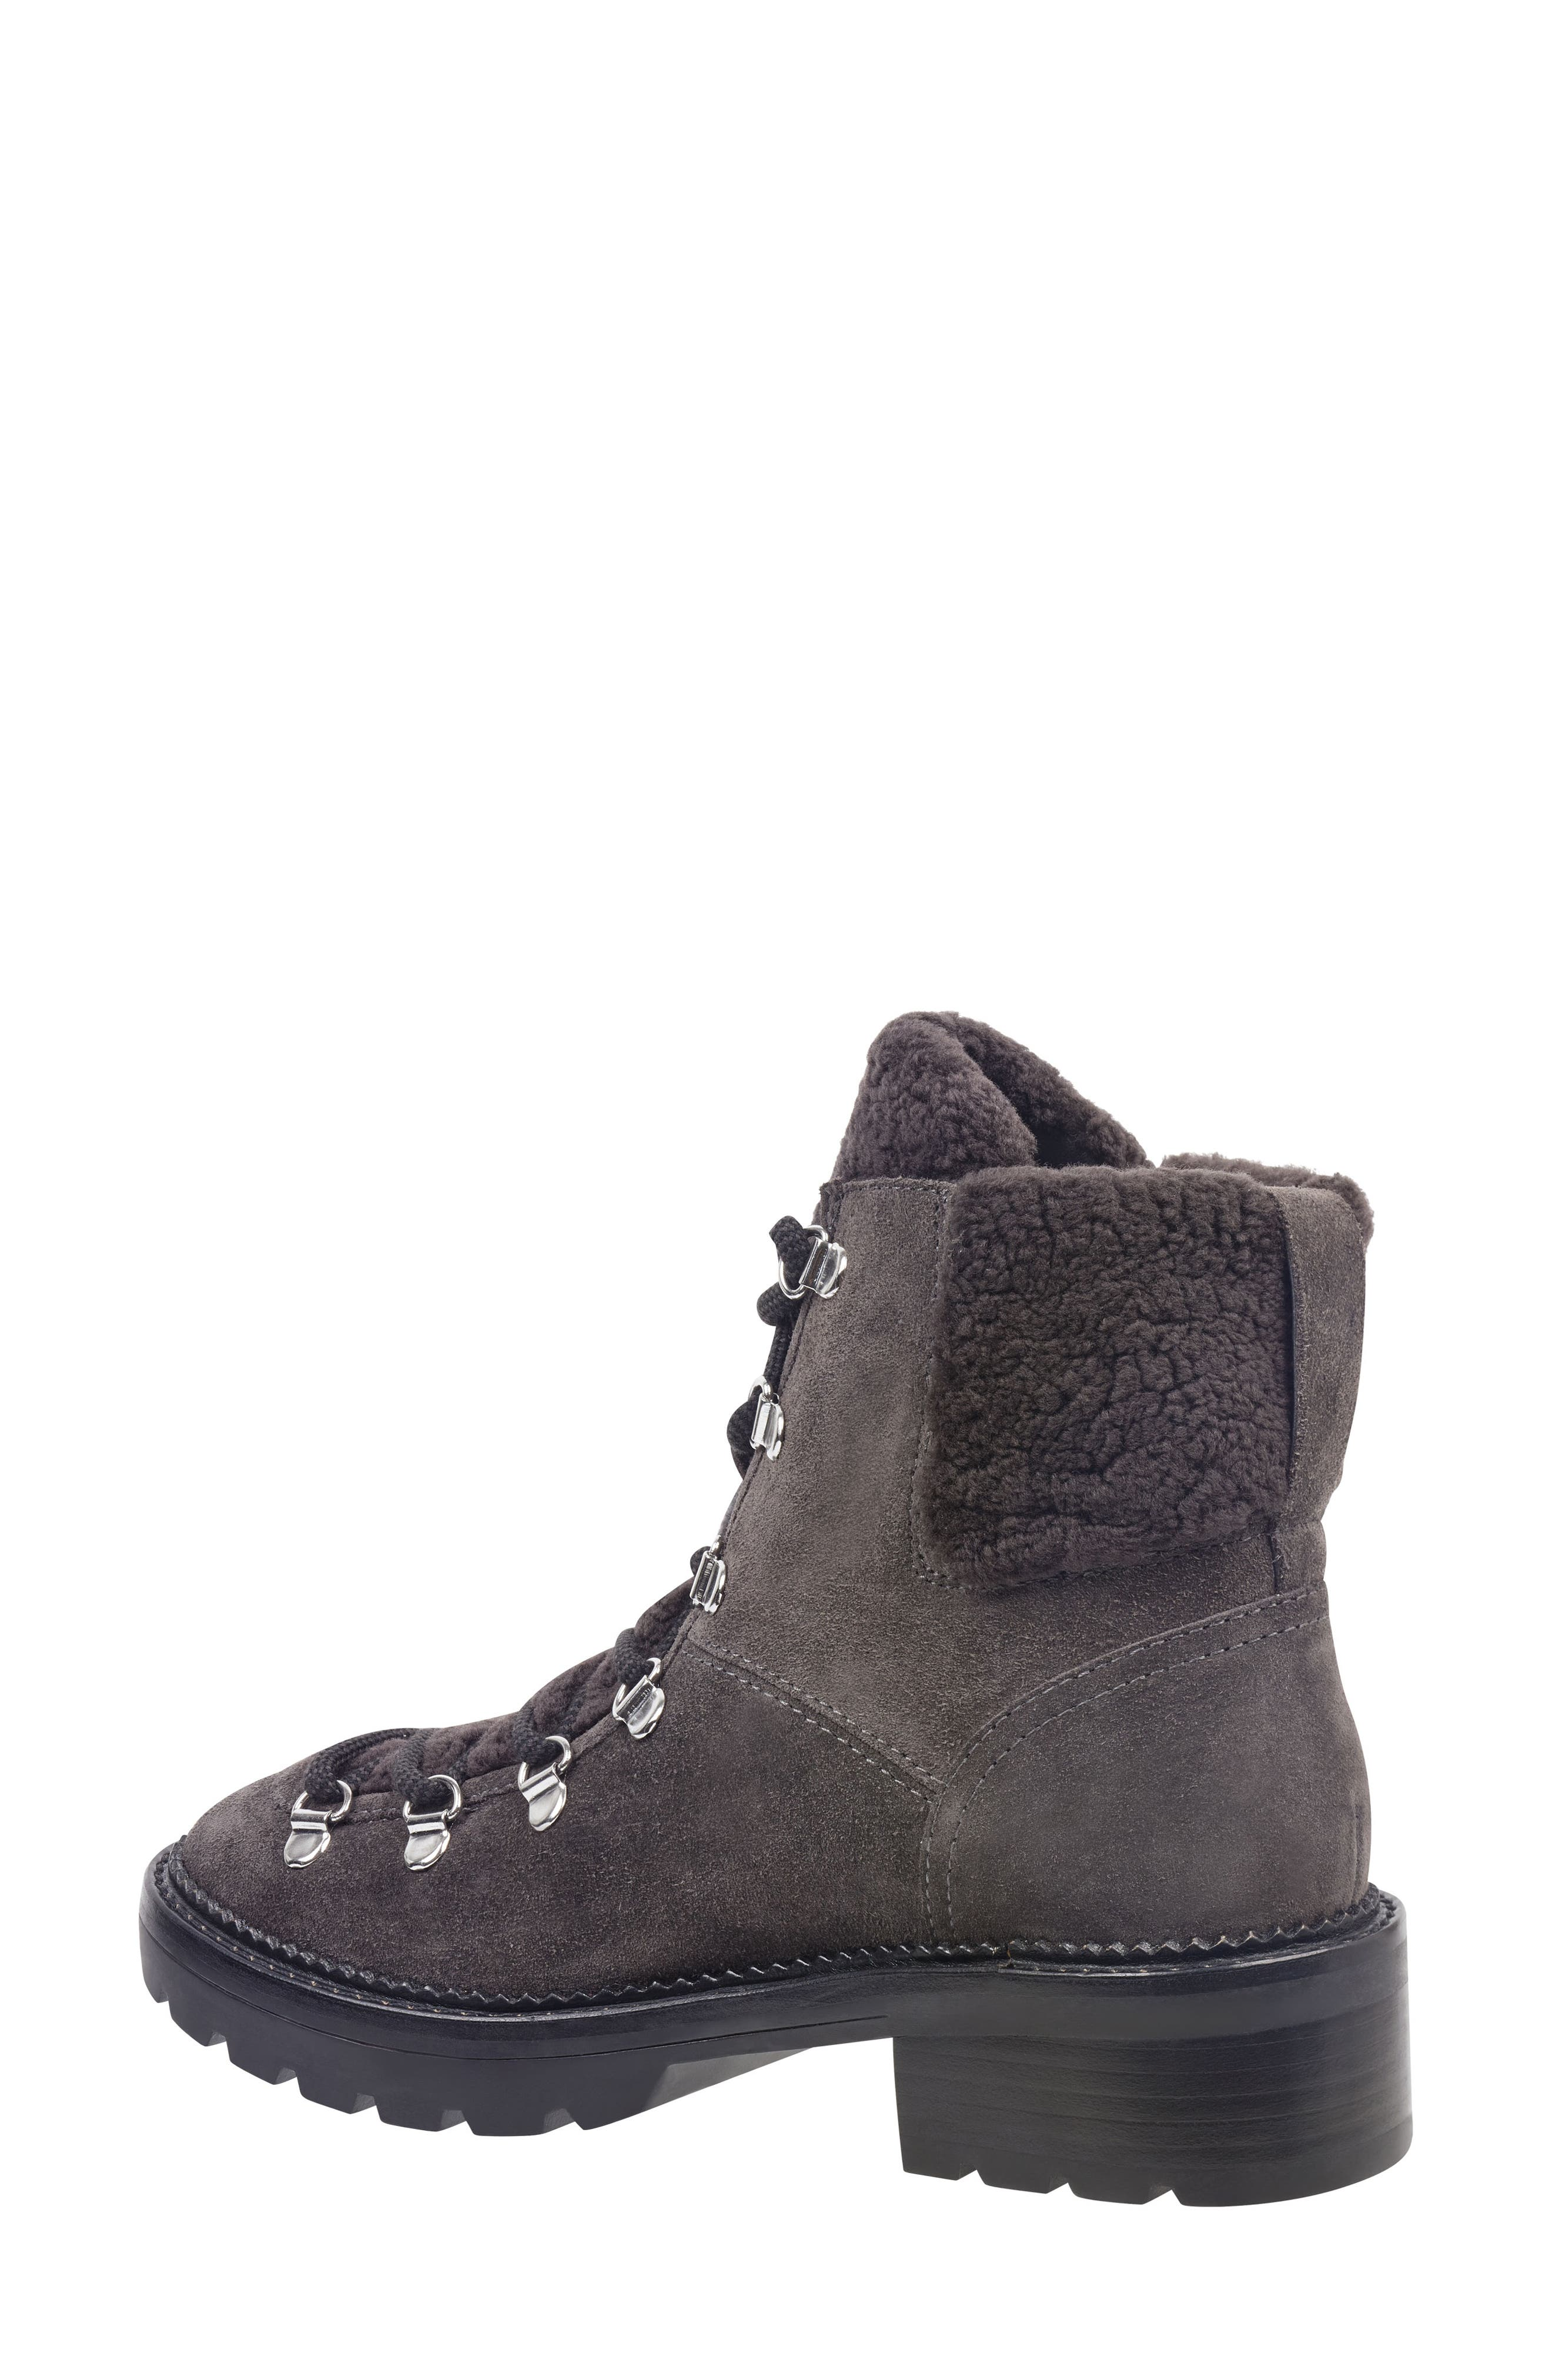 MARC FISHER LTD,                             Capell Genuine Shearling Cuff Lace-Up Boot,                             Alternate thumbnail 2, color,                             GREY SUEDE